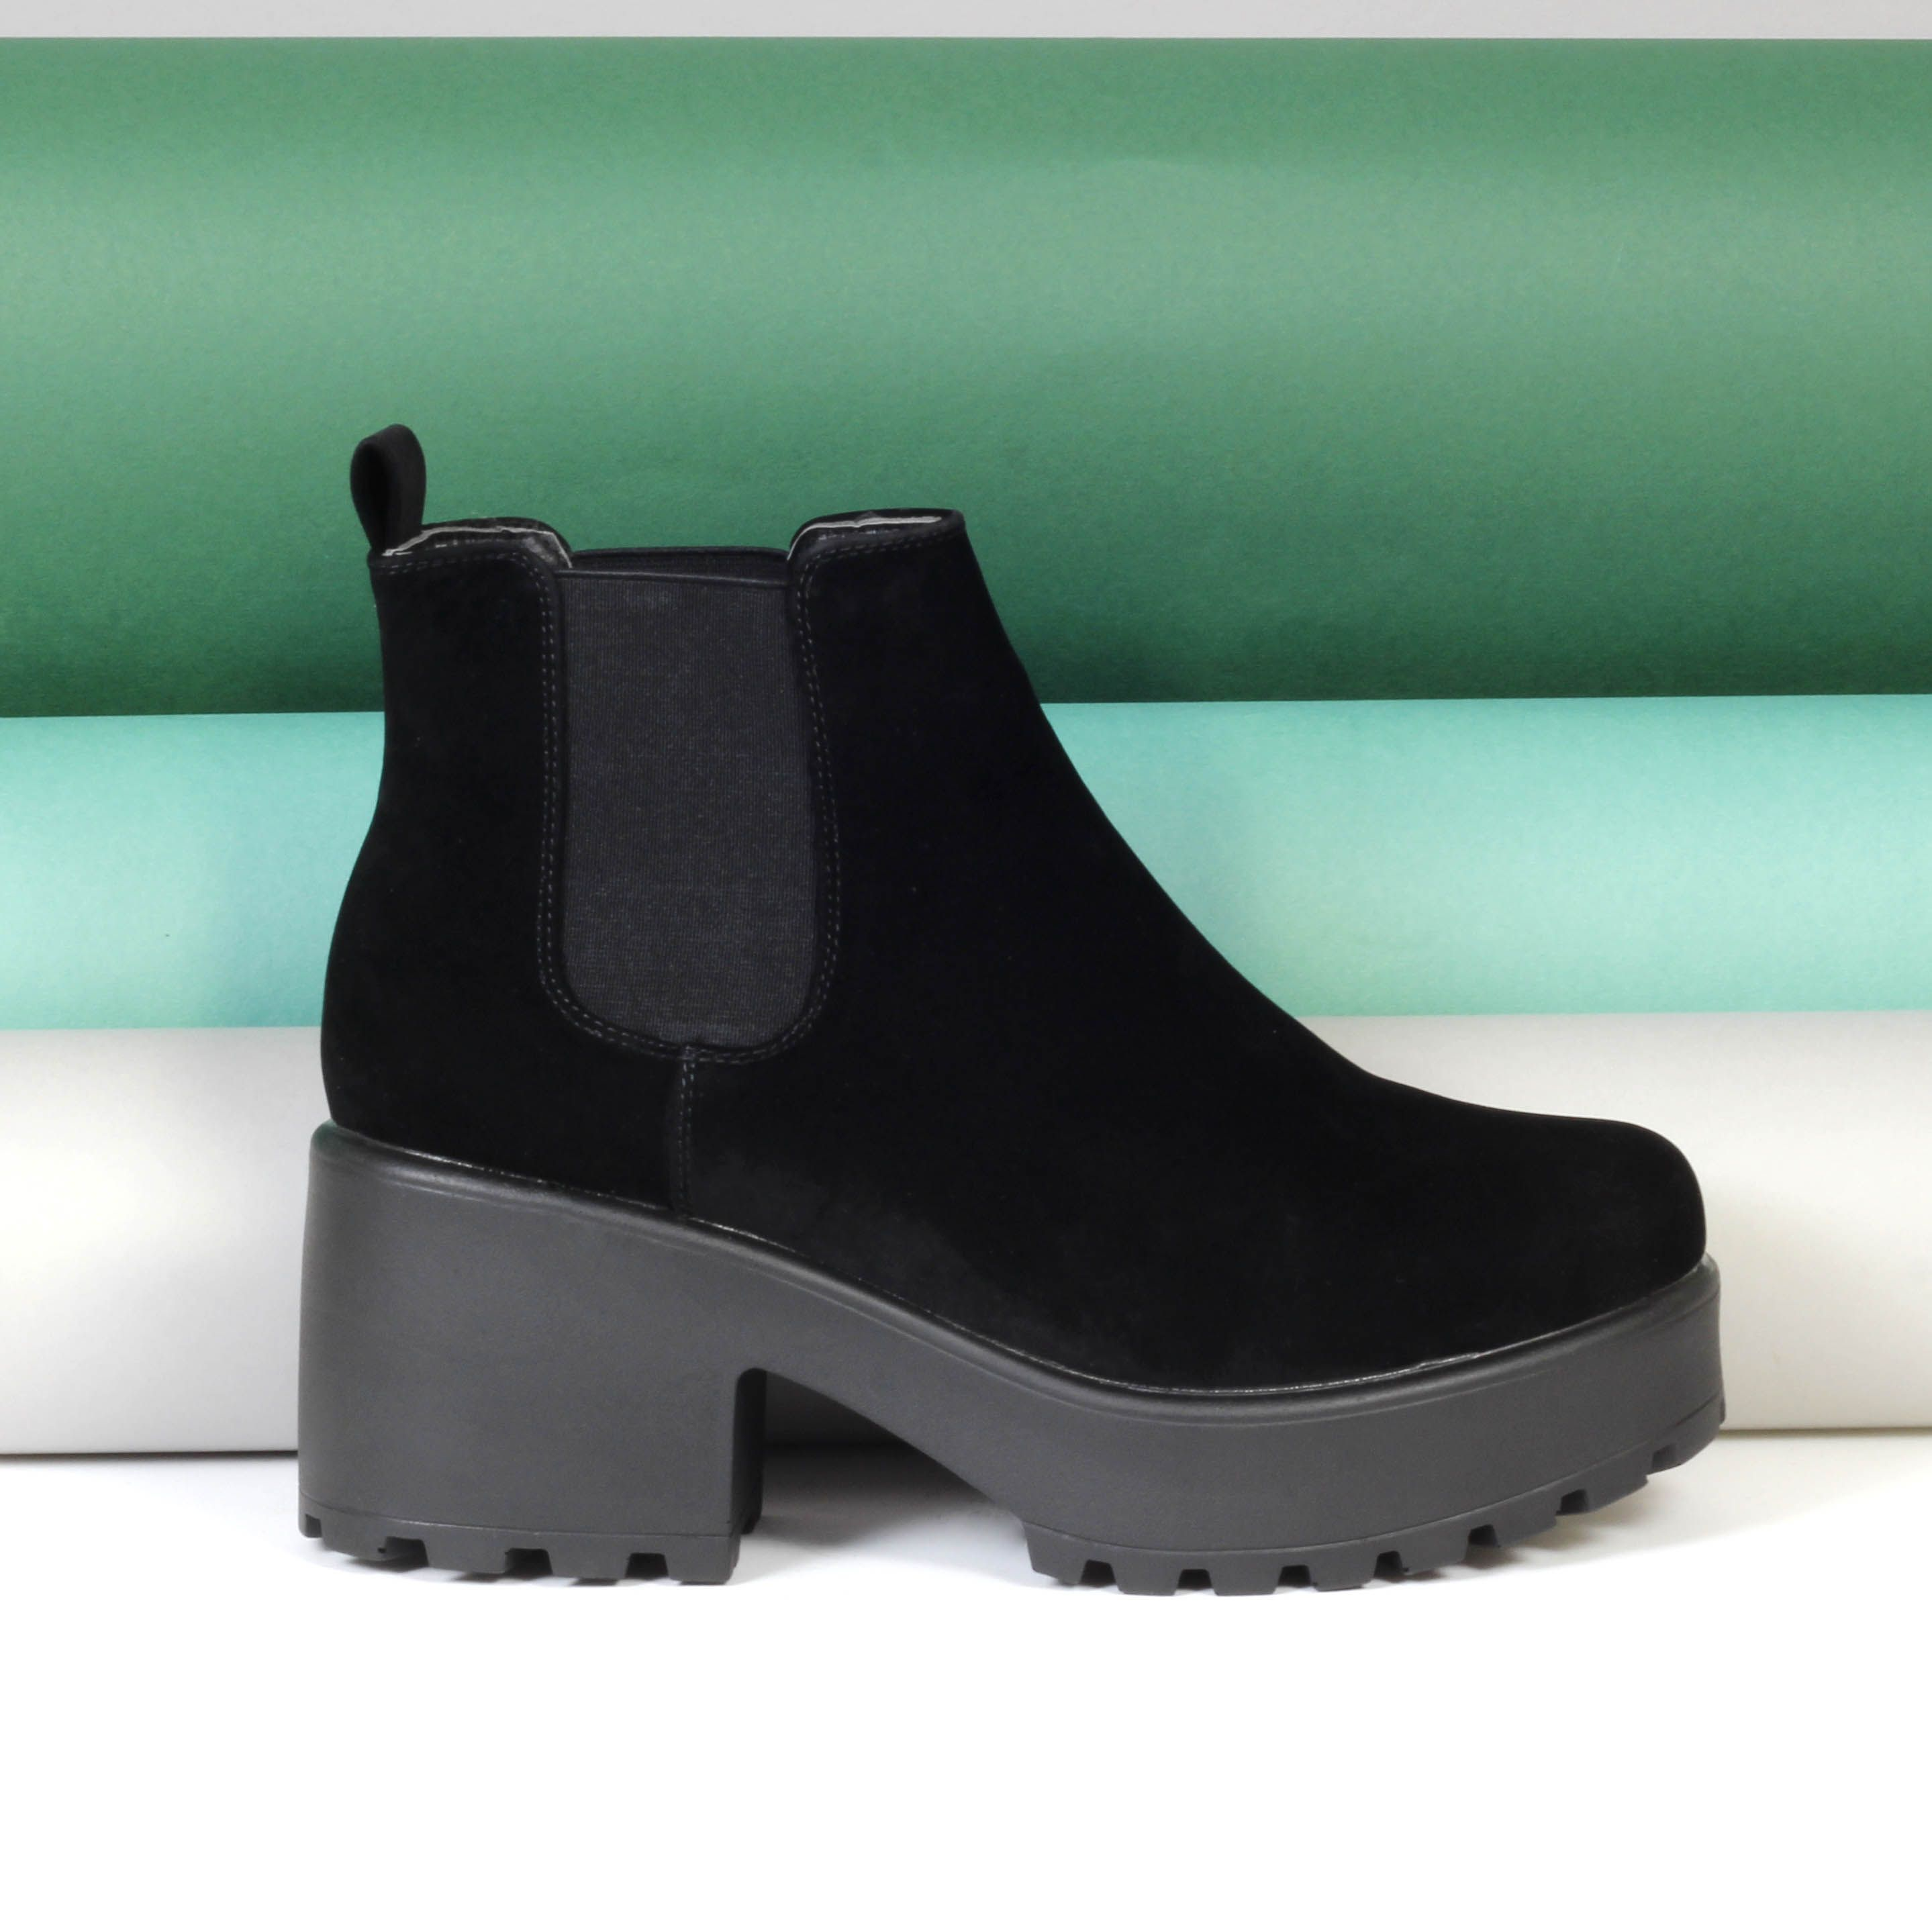 541b850f0 Winter faux suede black chunky boots from Korky s Shoes